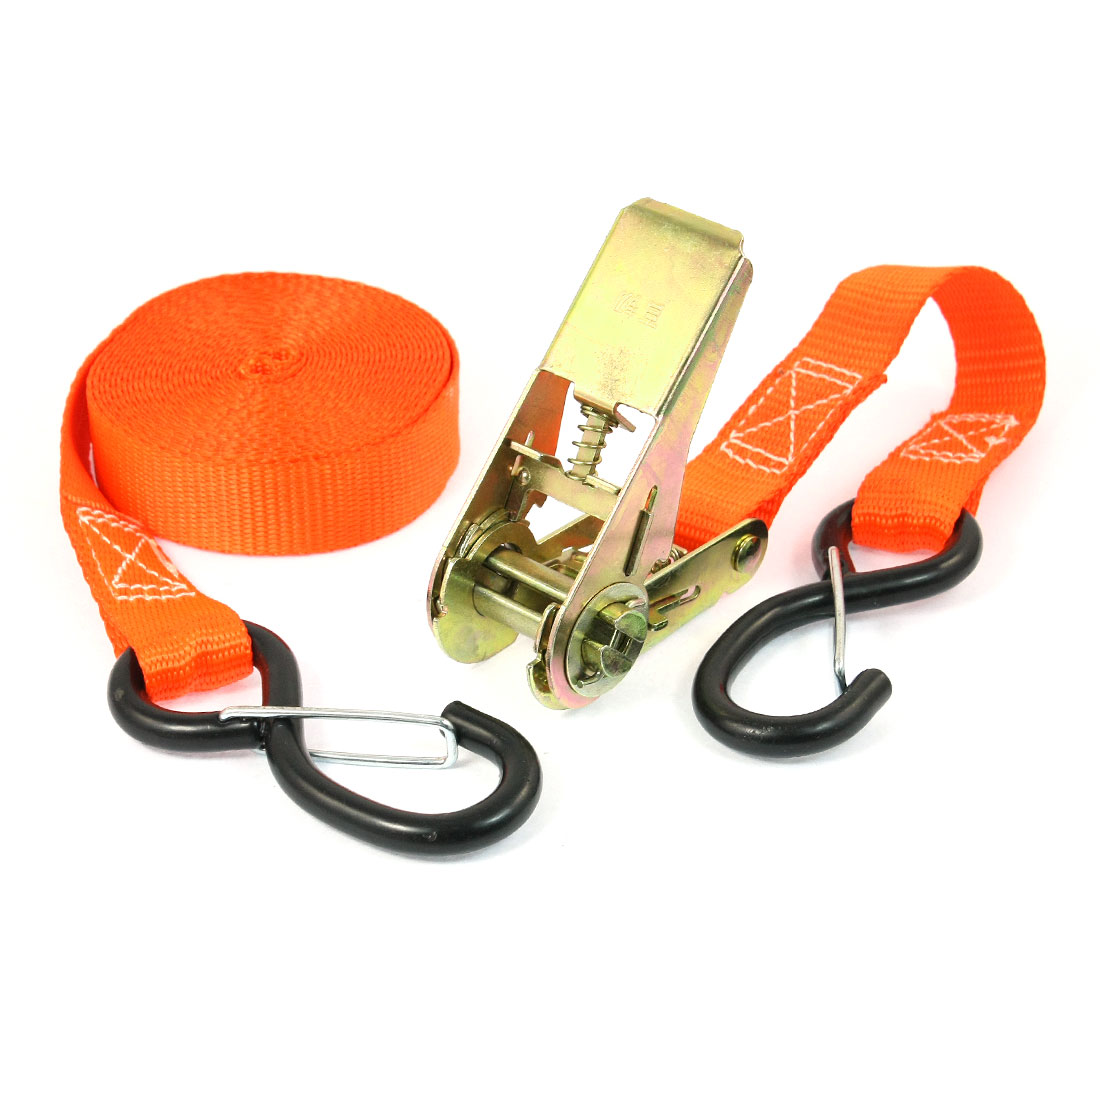 S Shape Metal Hook Cargo Binding Band Ratchet Tie Down Strap 5M 16ft Orange